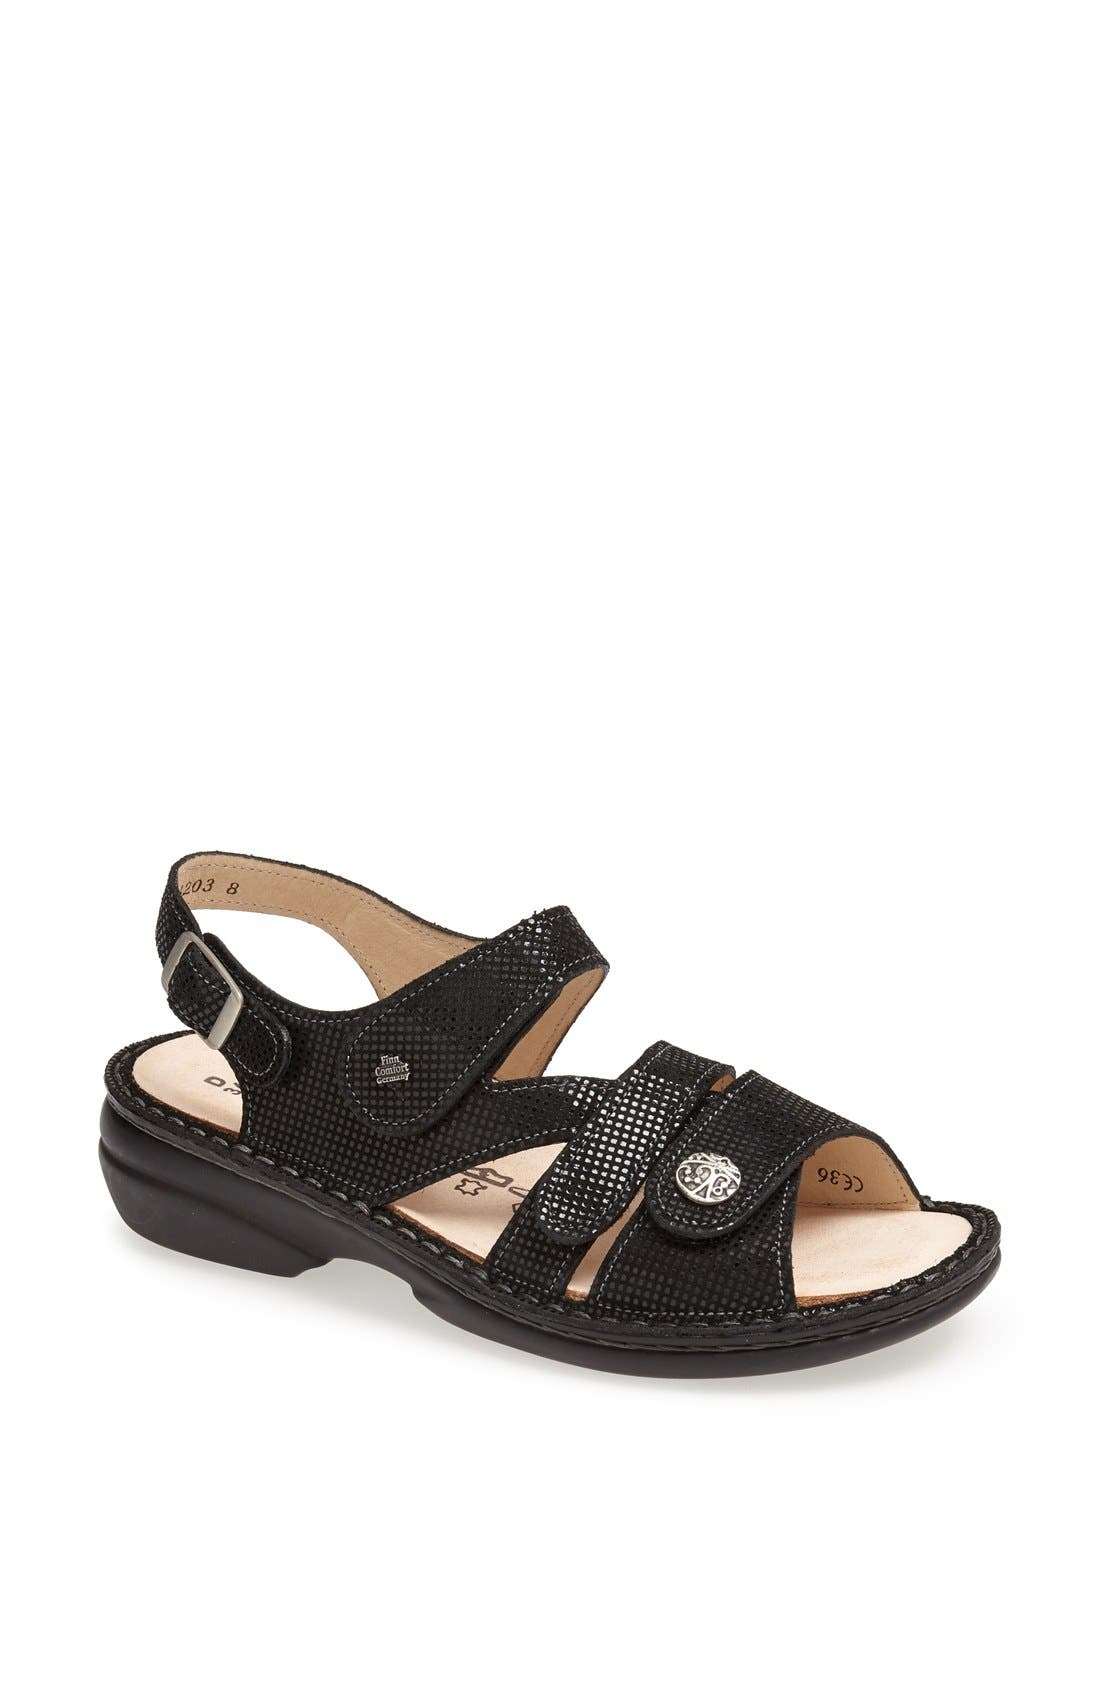 'Gomera' Sandal,                             Main thumbnail 1, color,                             Black